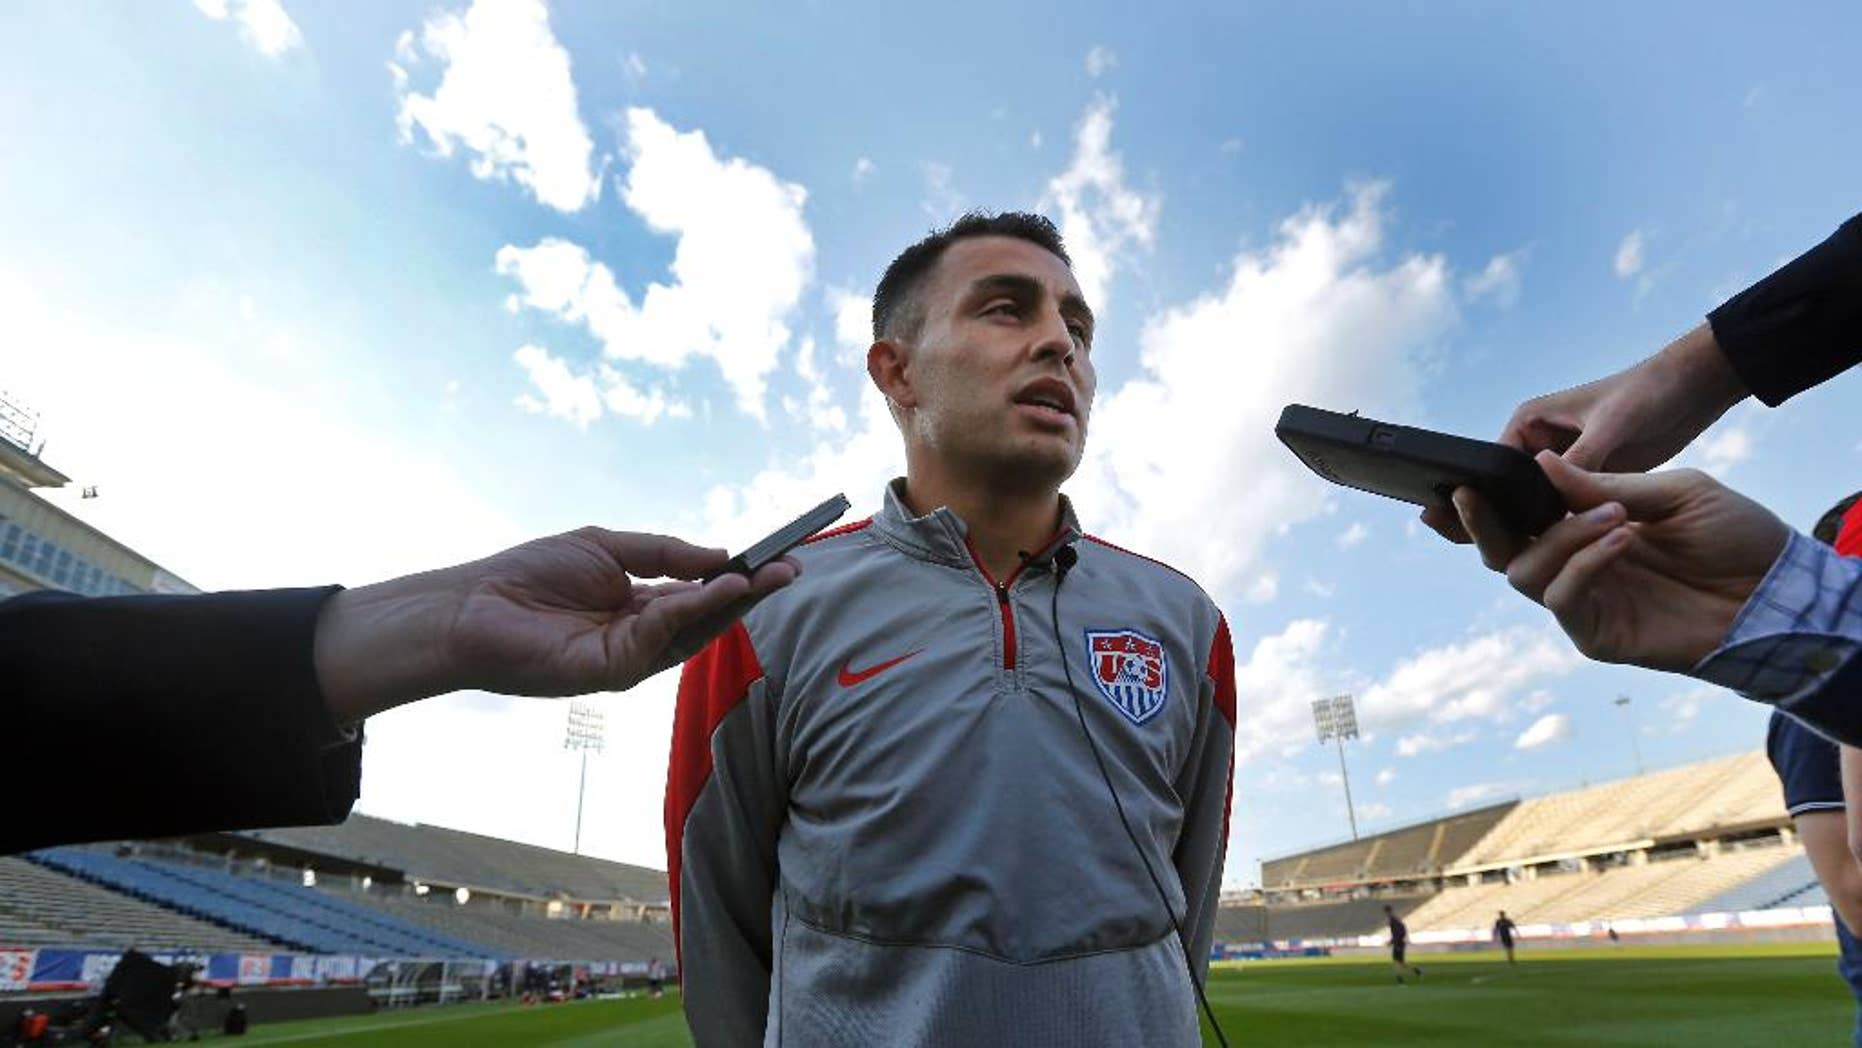 United States forward Miguel Ibarra speaks to reporters prior to training at Rentschler Field in East Hartford, Conn., Thursday, Oct. 9, 2014. The U.S. will host Ecuador in a friendly soccer match on Friday. (AP Photo/Elise Amendola)